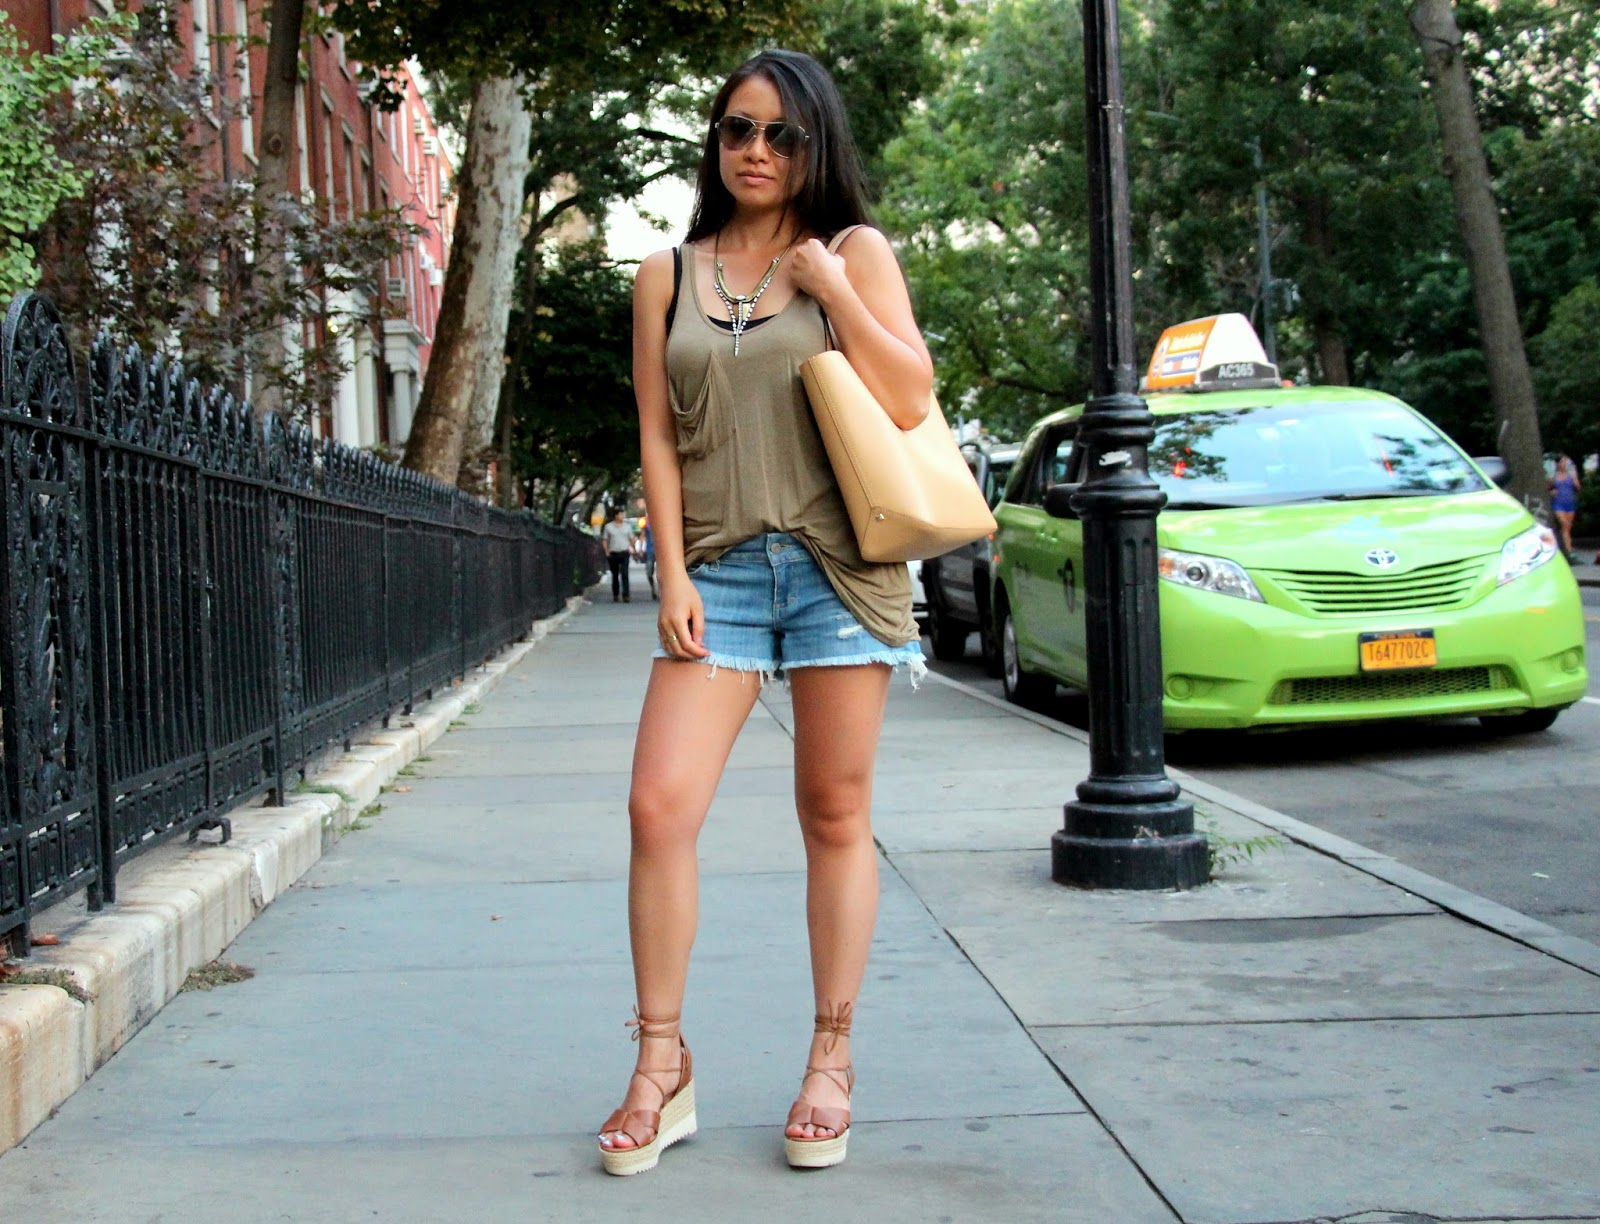 summer shorts outfit Siwy camilla denim cutoffs Aldo Joella wedge sandals Rebecca minkoff mini dylan tote Lionette Dylan necklace